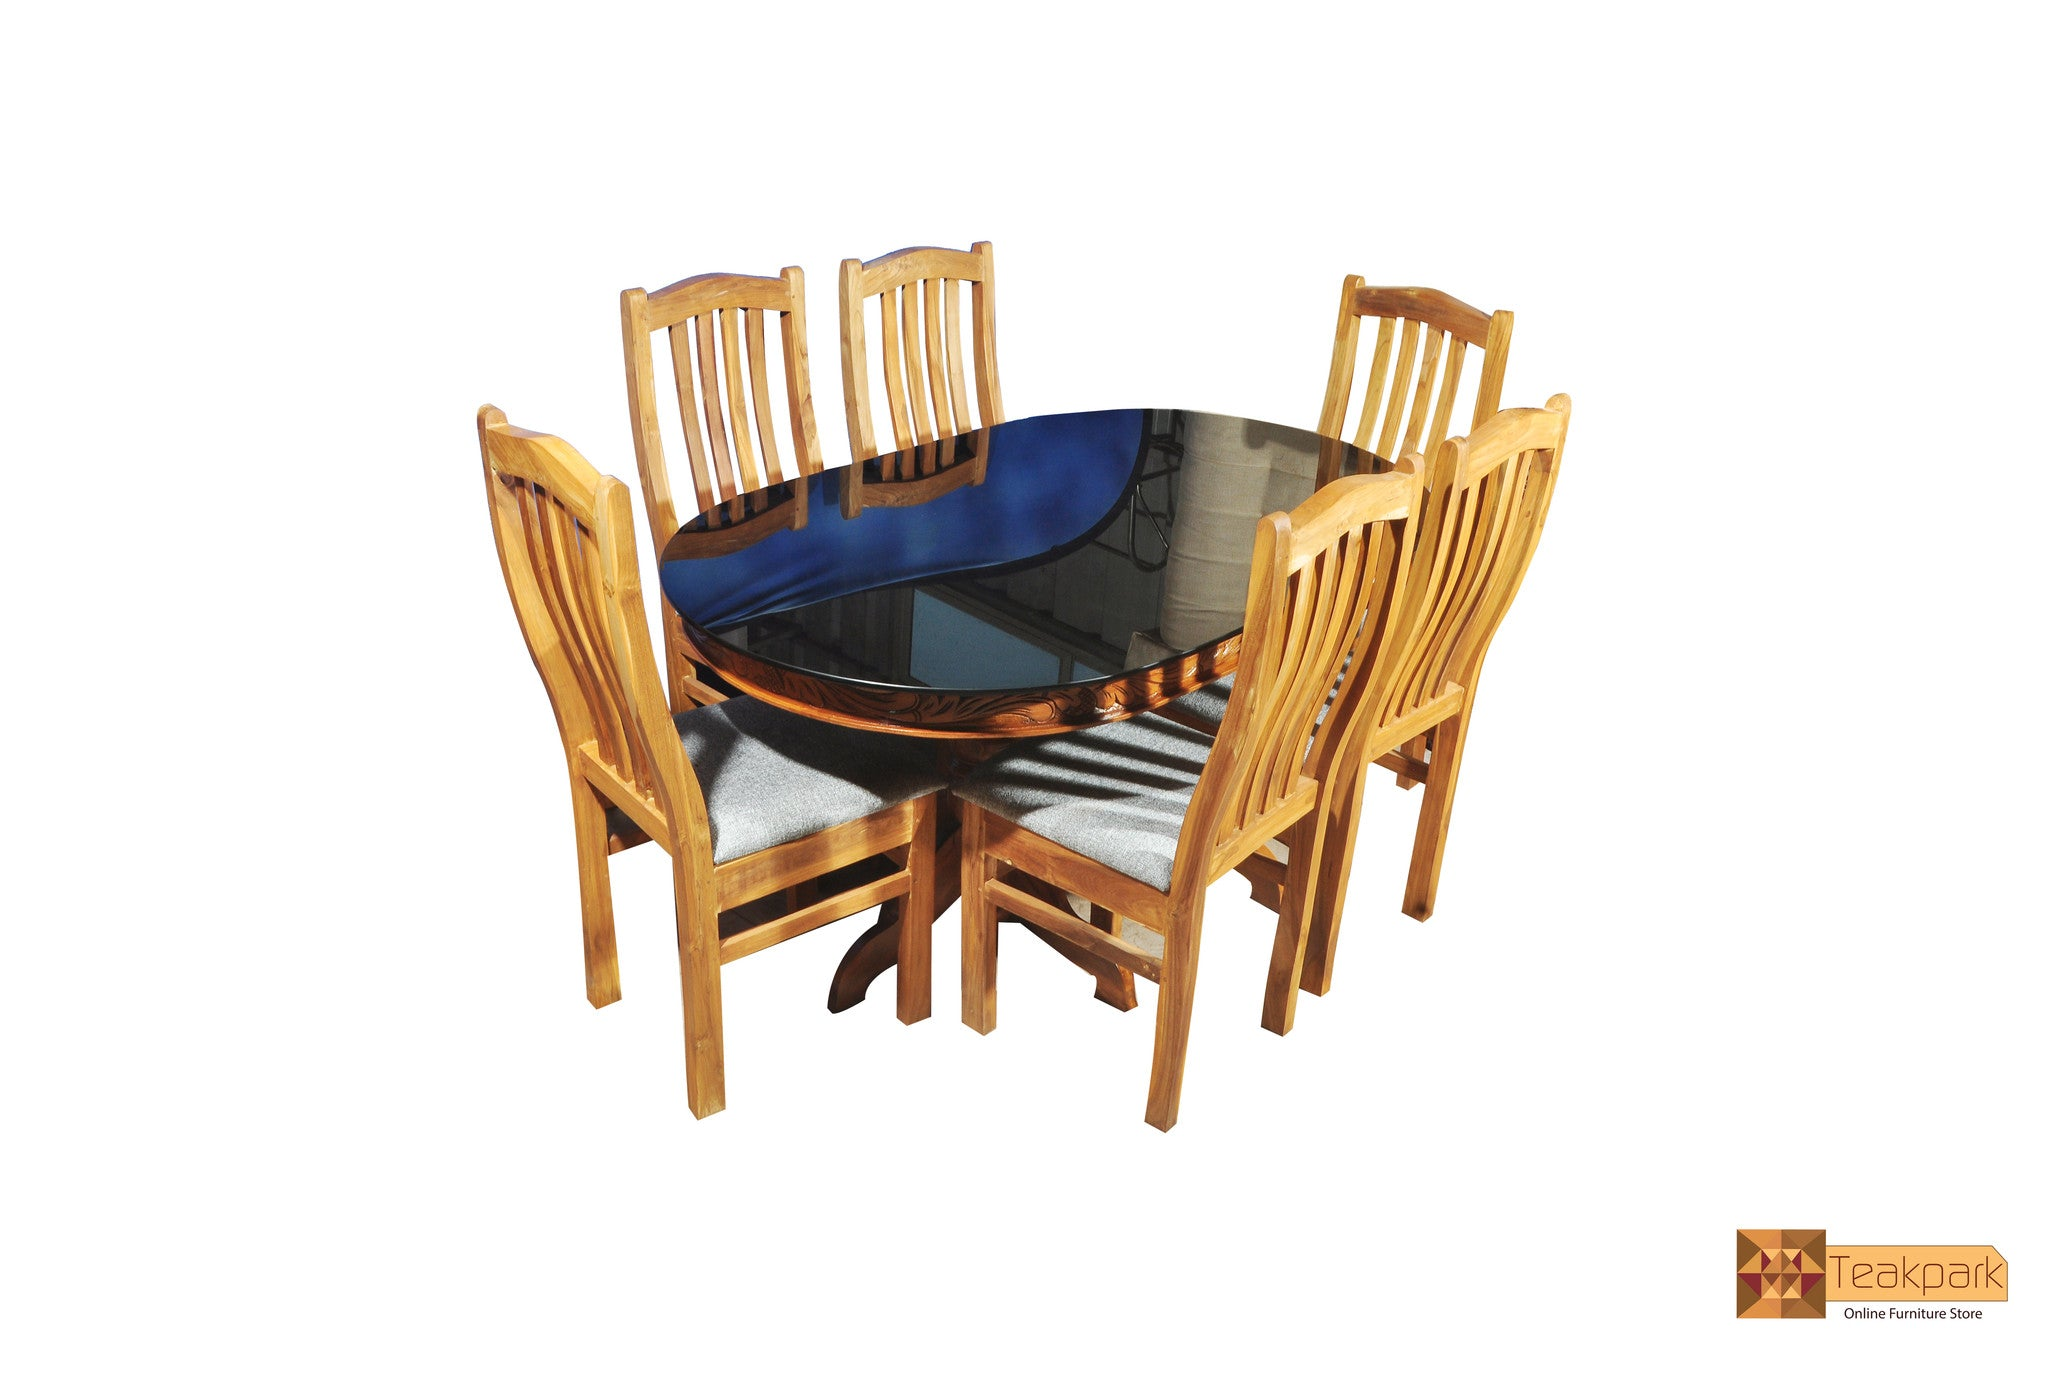 Ganga Oval Teak Wood Dining Set Glass Top Table With 6 Chairs Teakpark